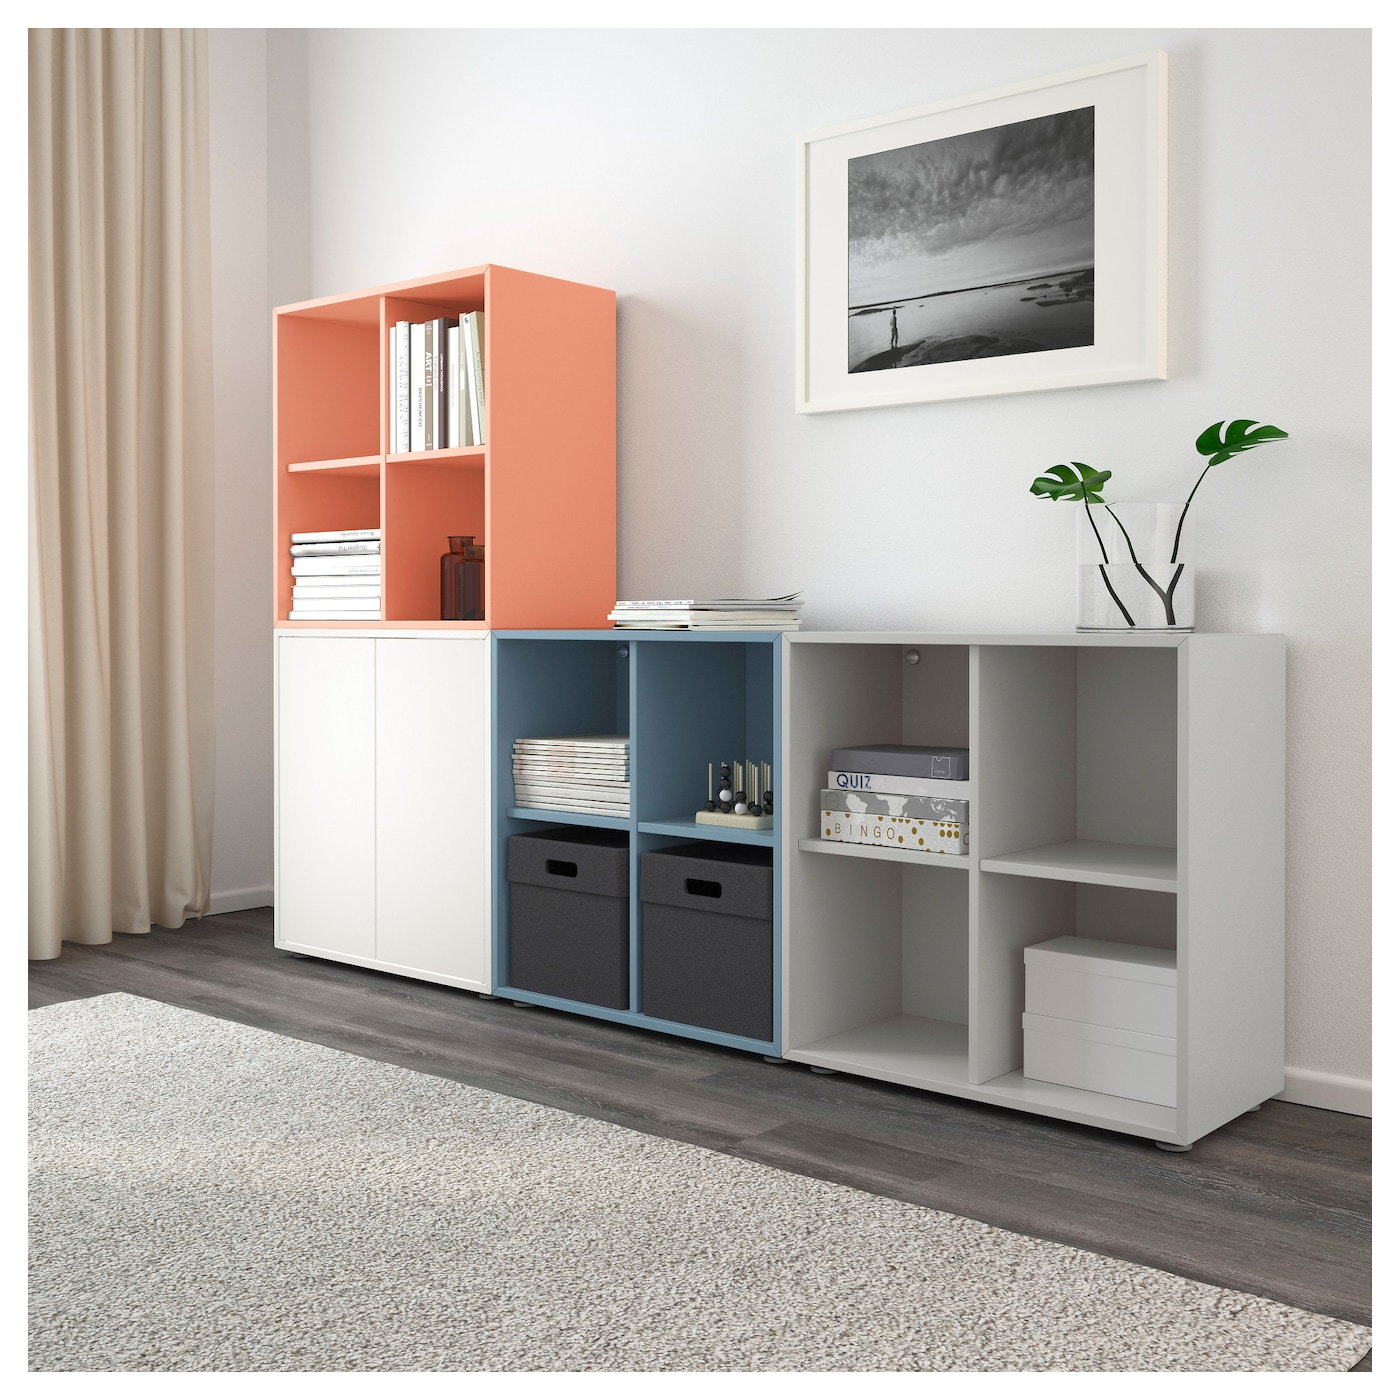 IKEA EKET cabinet combination with feet